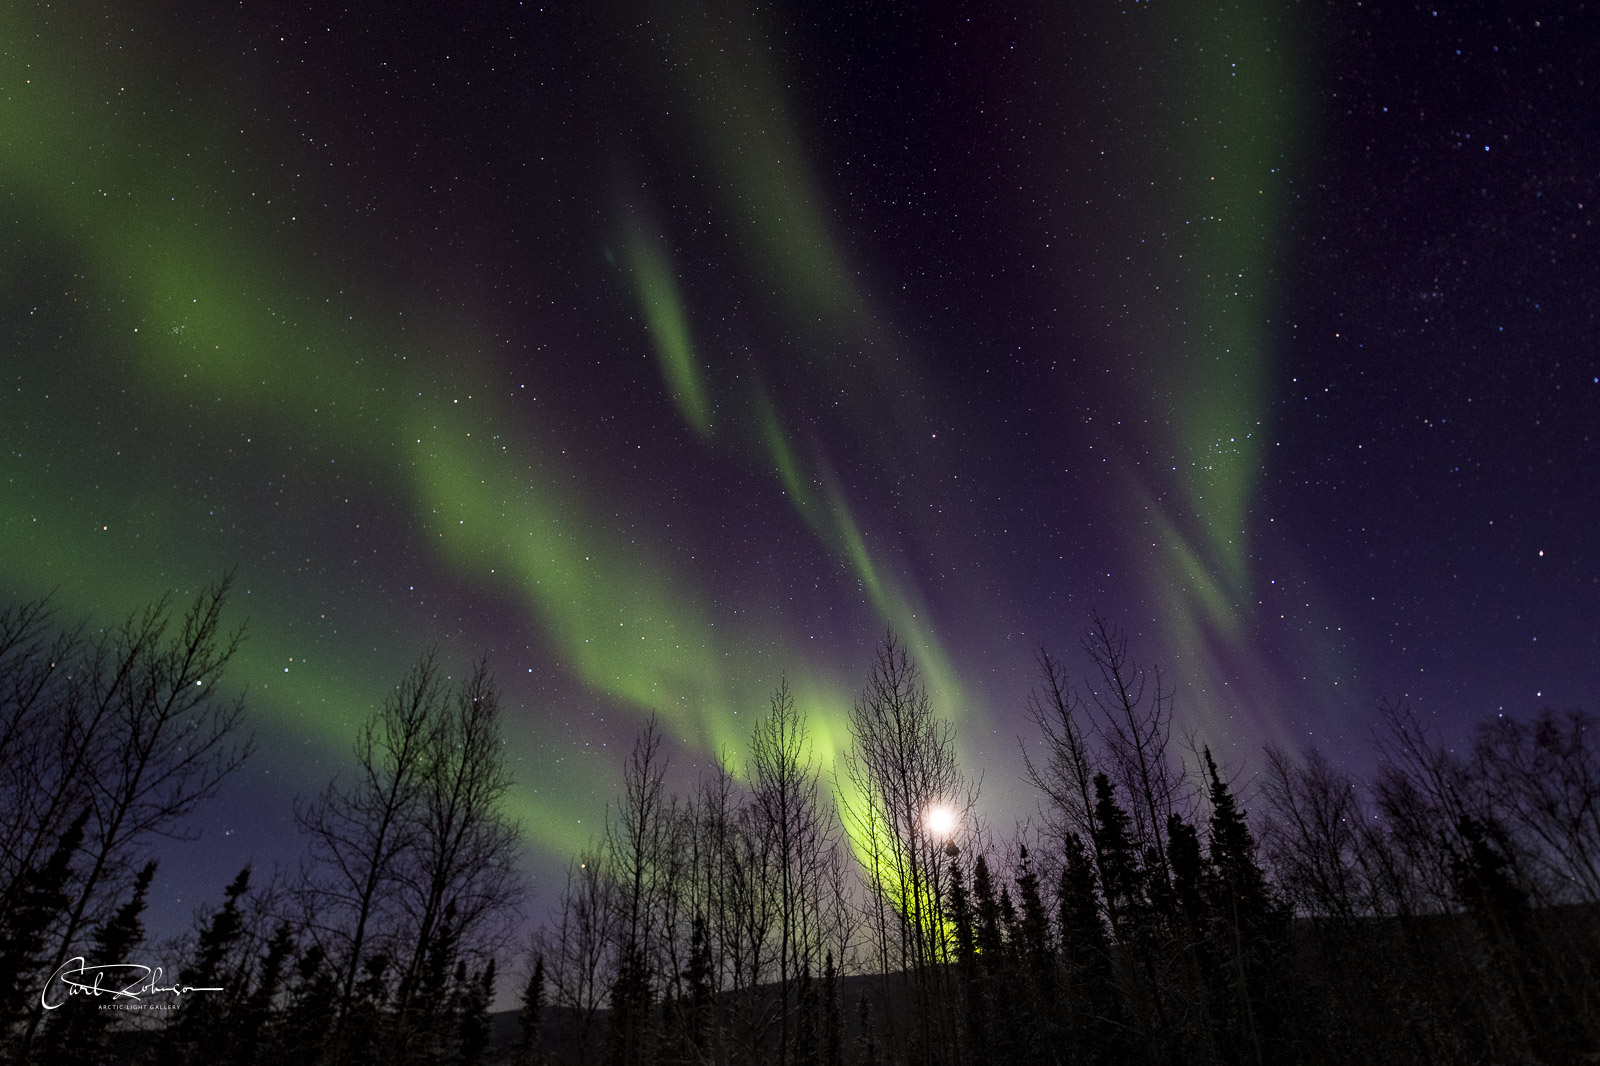 The aurora borealis fans across the sky, shining with the moon through a cluster of trees.